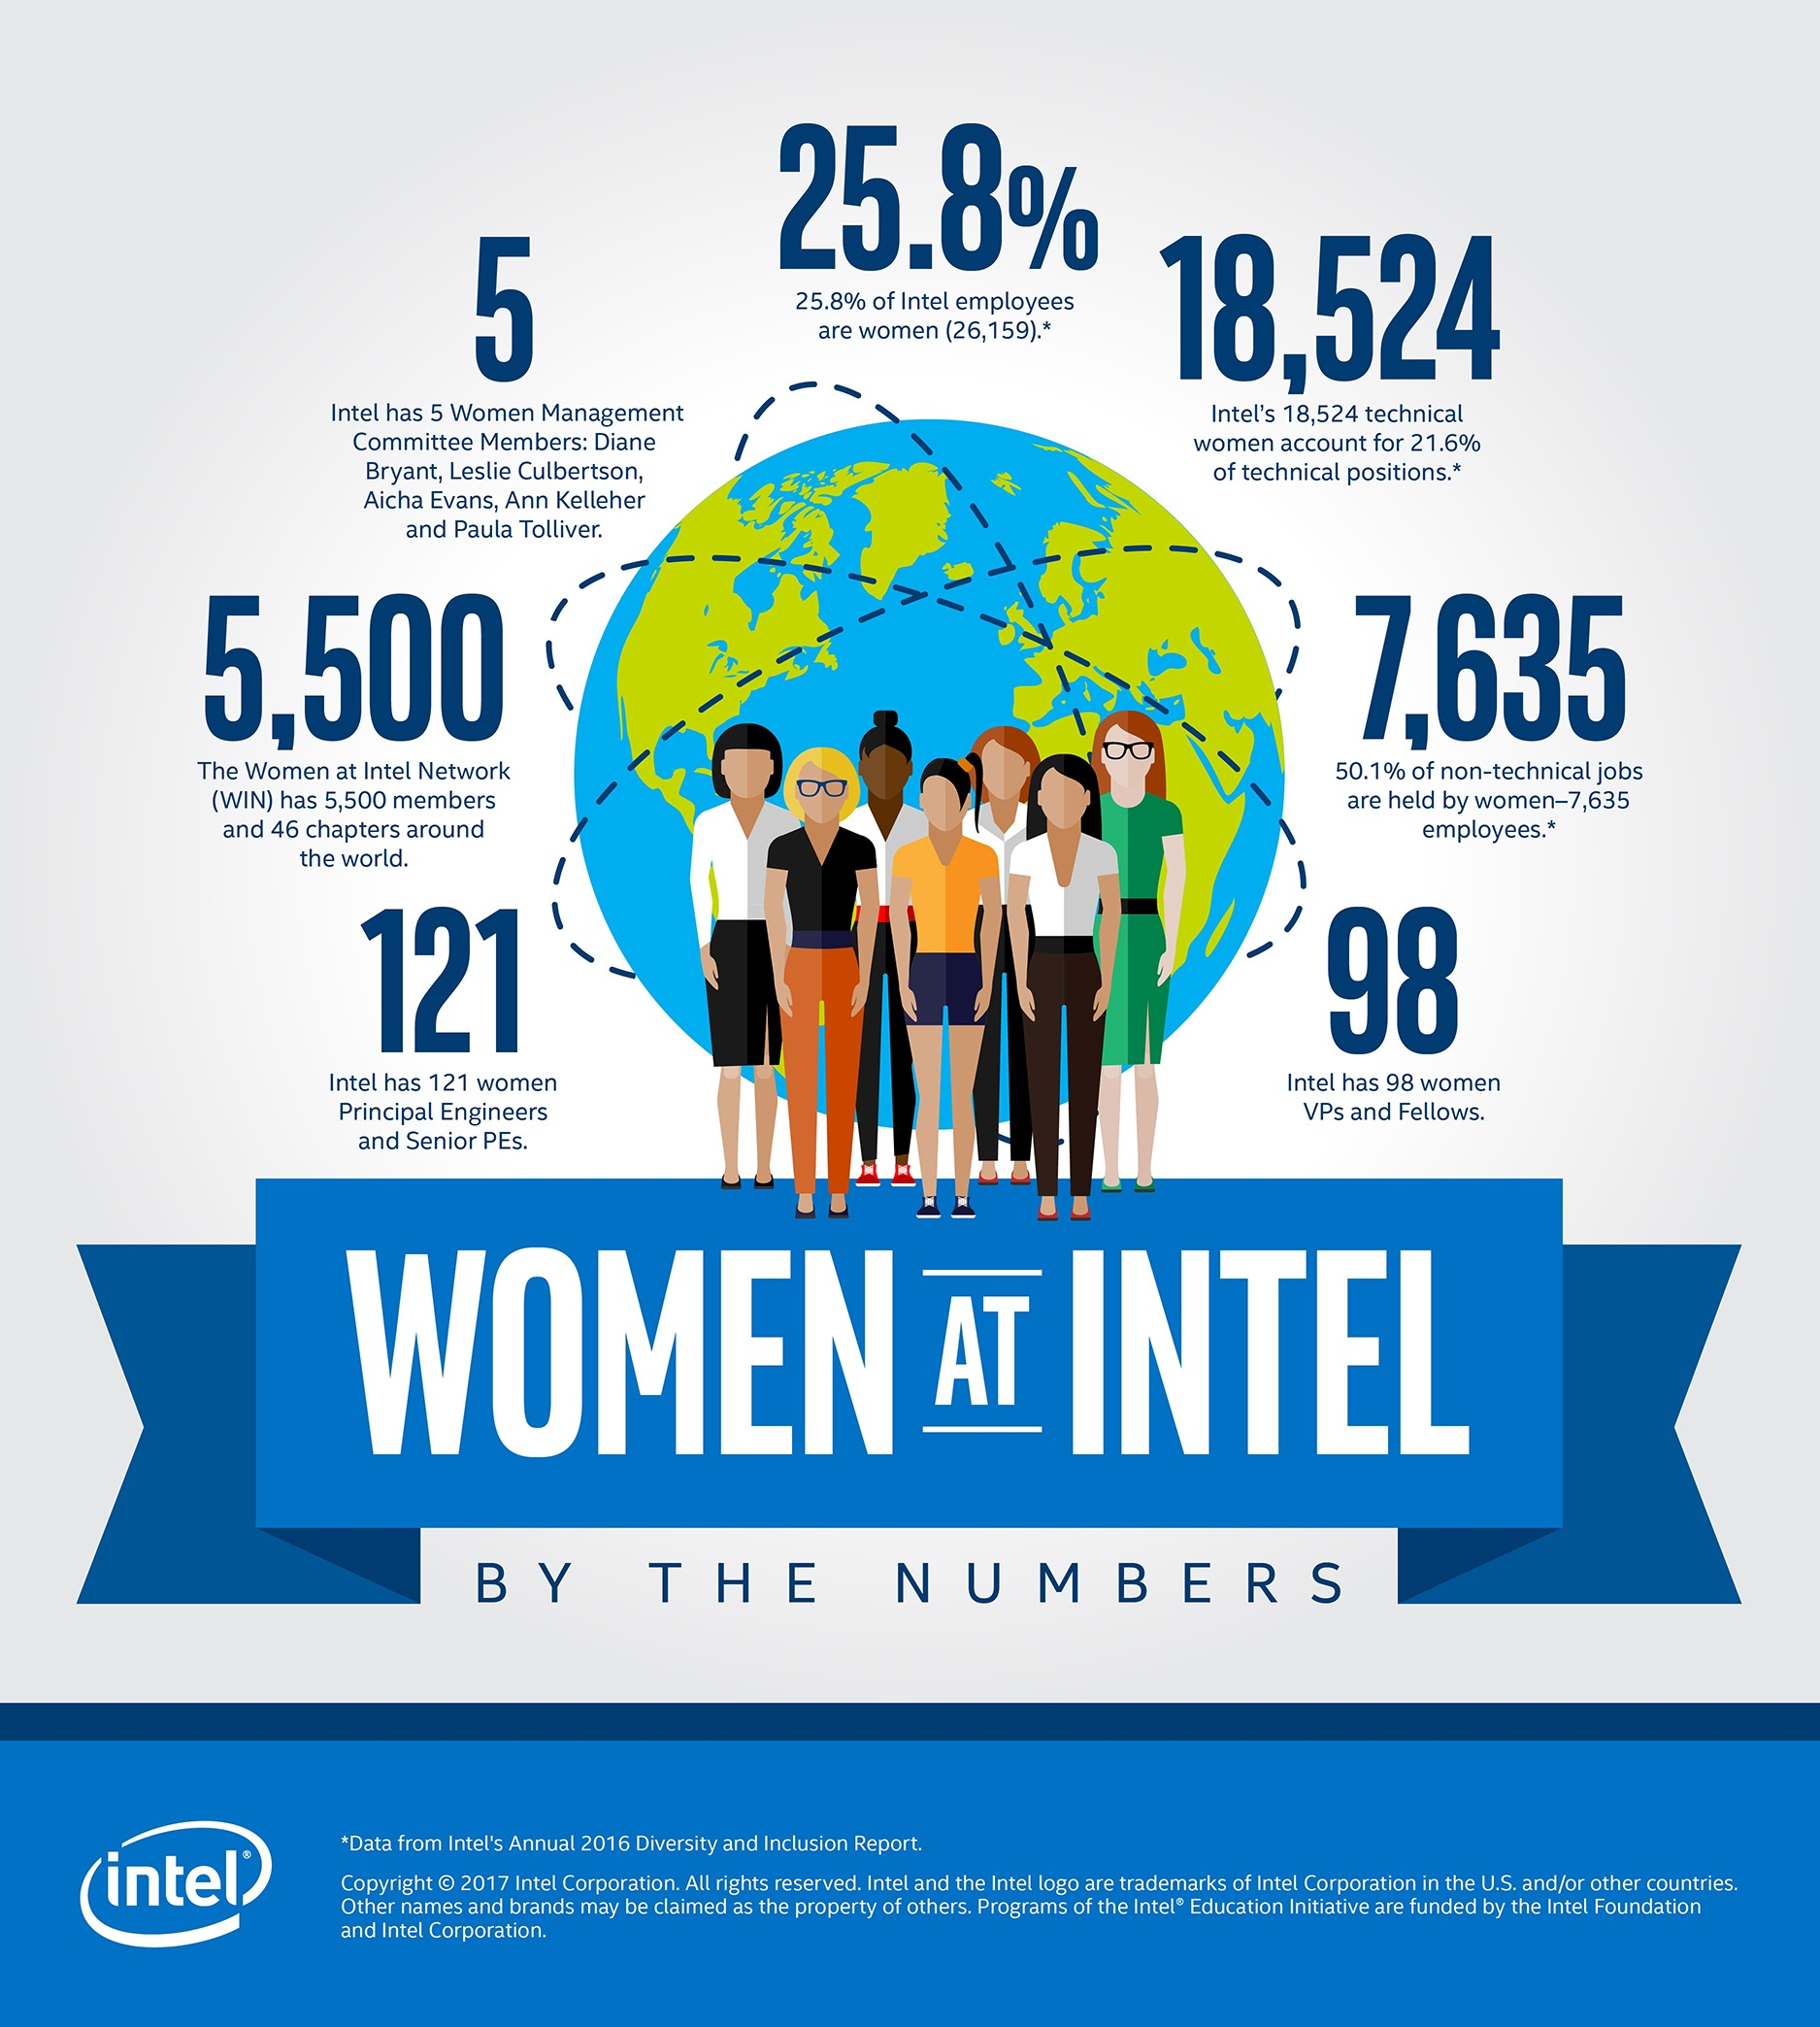 Intel's Annual 2016 Diversity and Inclusion - Global data